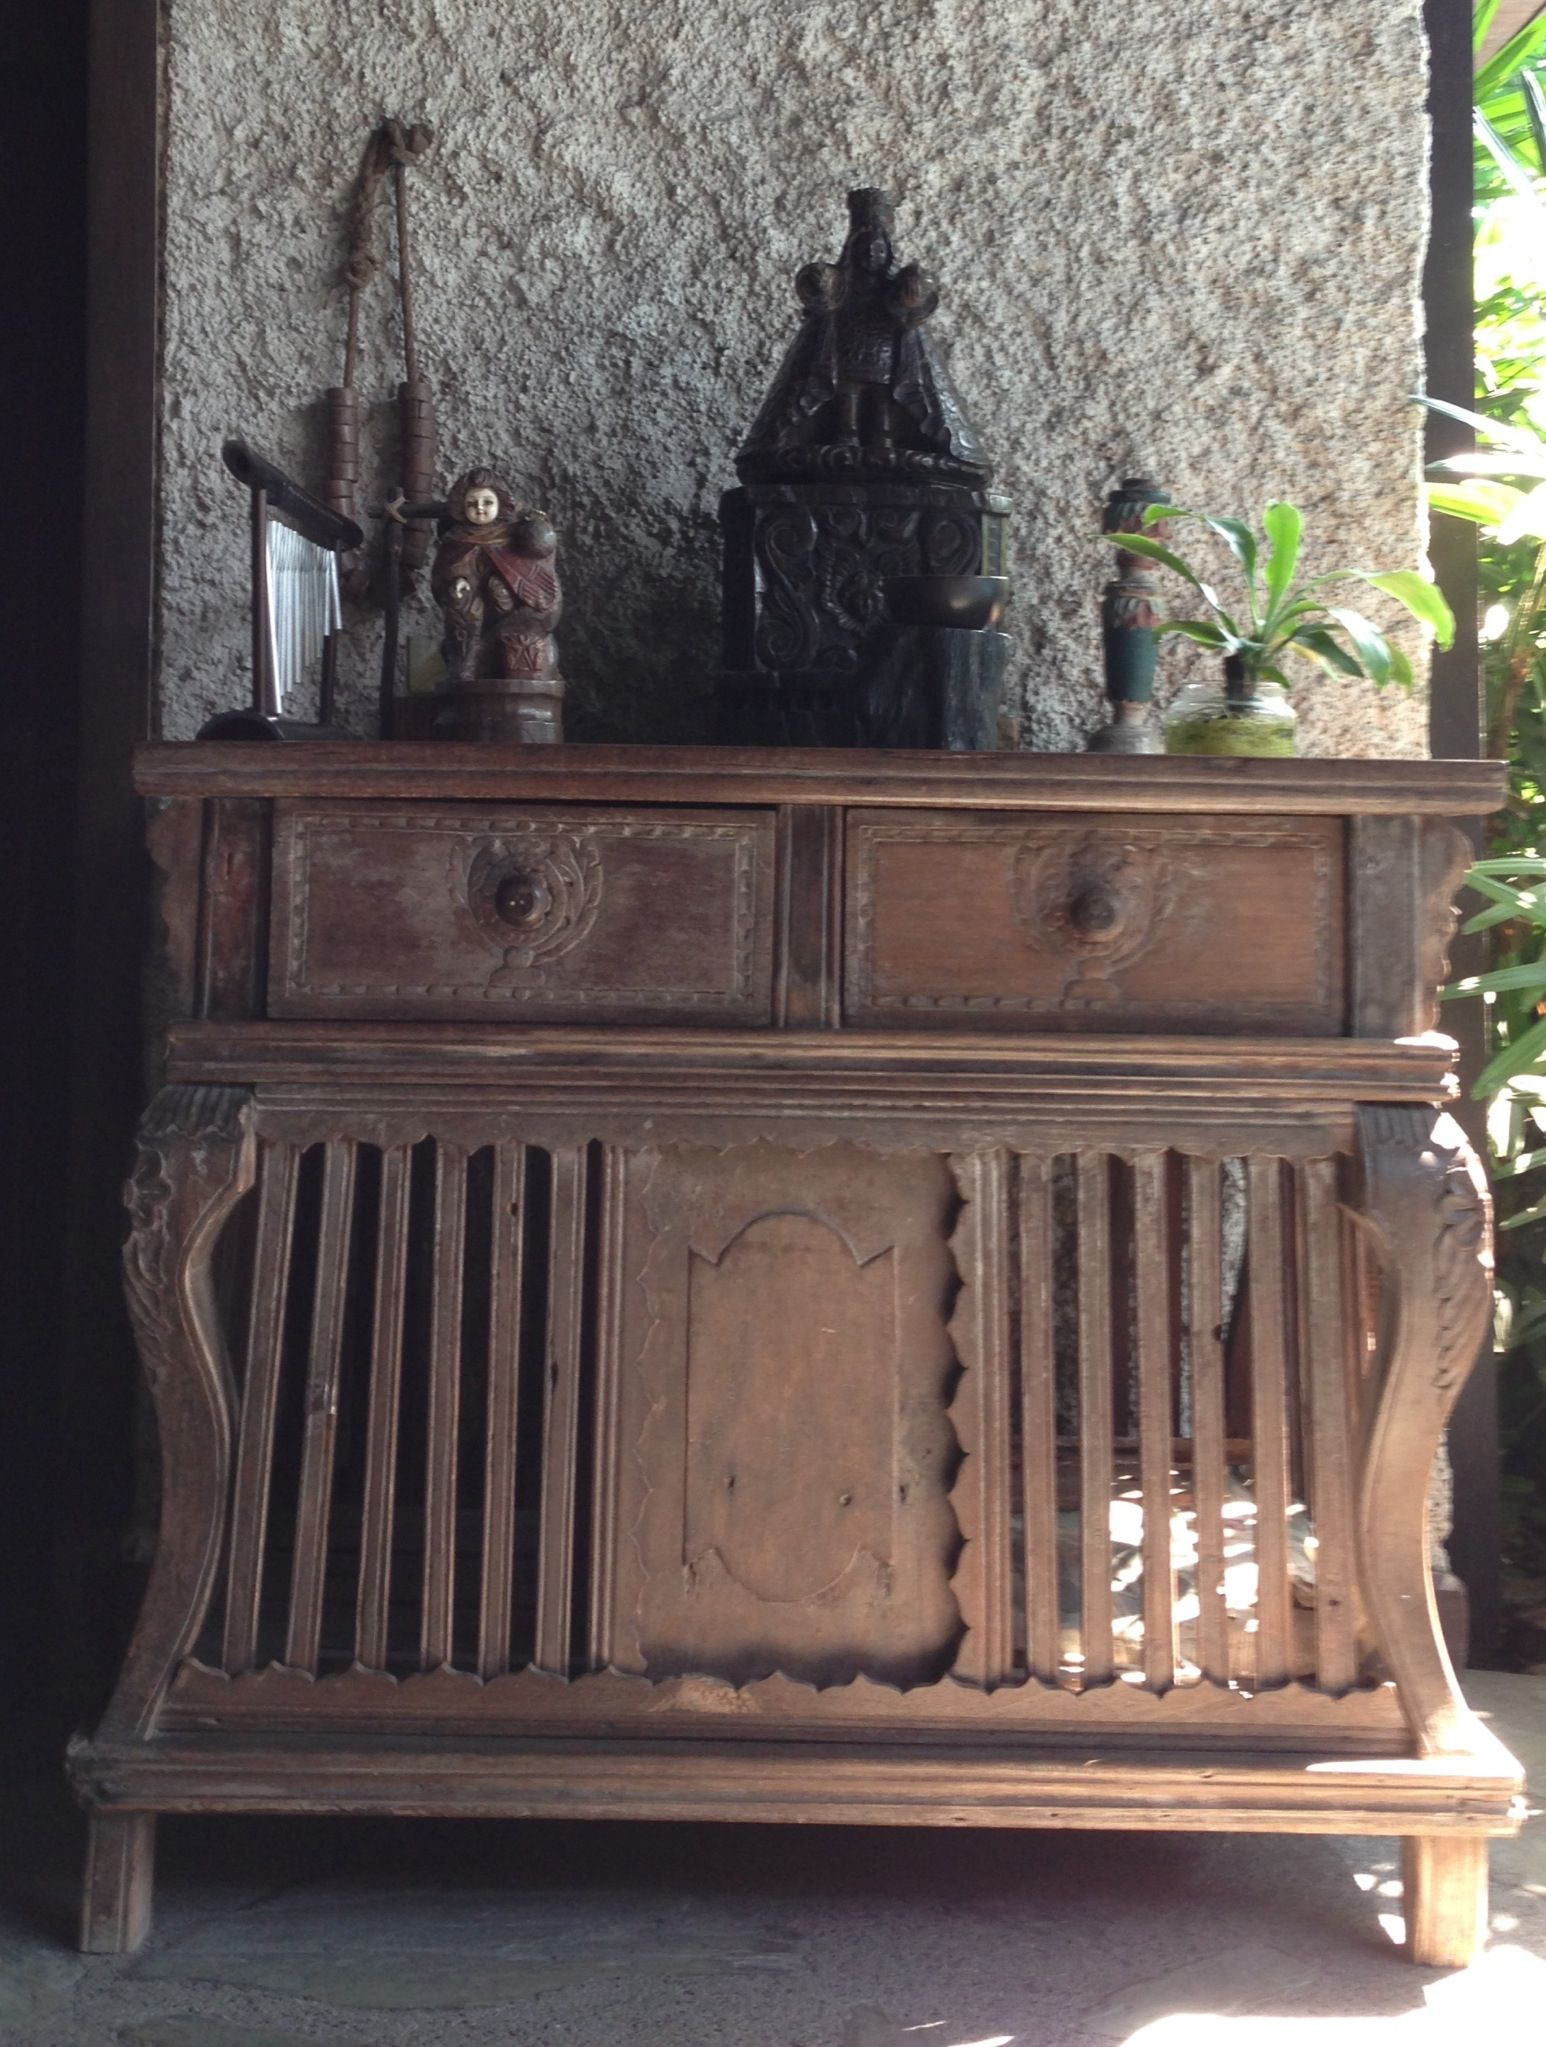 Spanish Filipino Antiques: Sto. Niño on top of chicken cage - Spanish Filipino Antiques: Sto. Niño On Top Of Chicken Cage